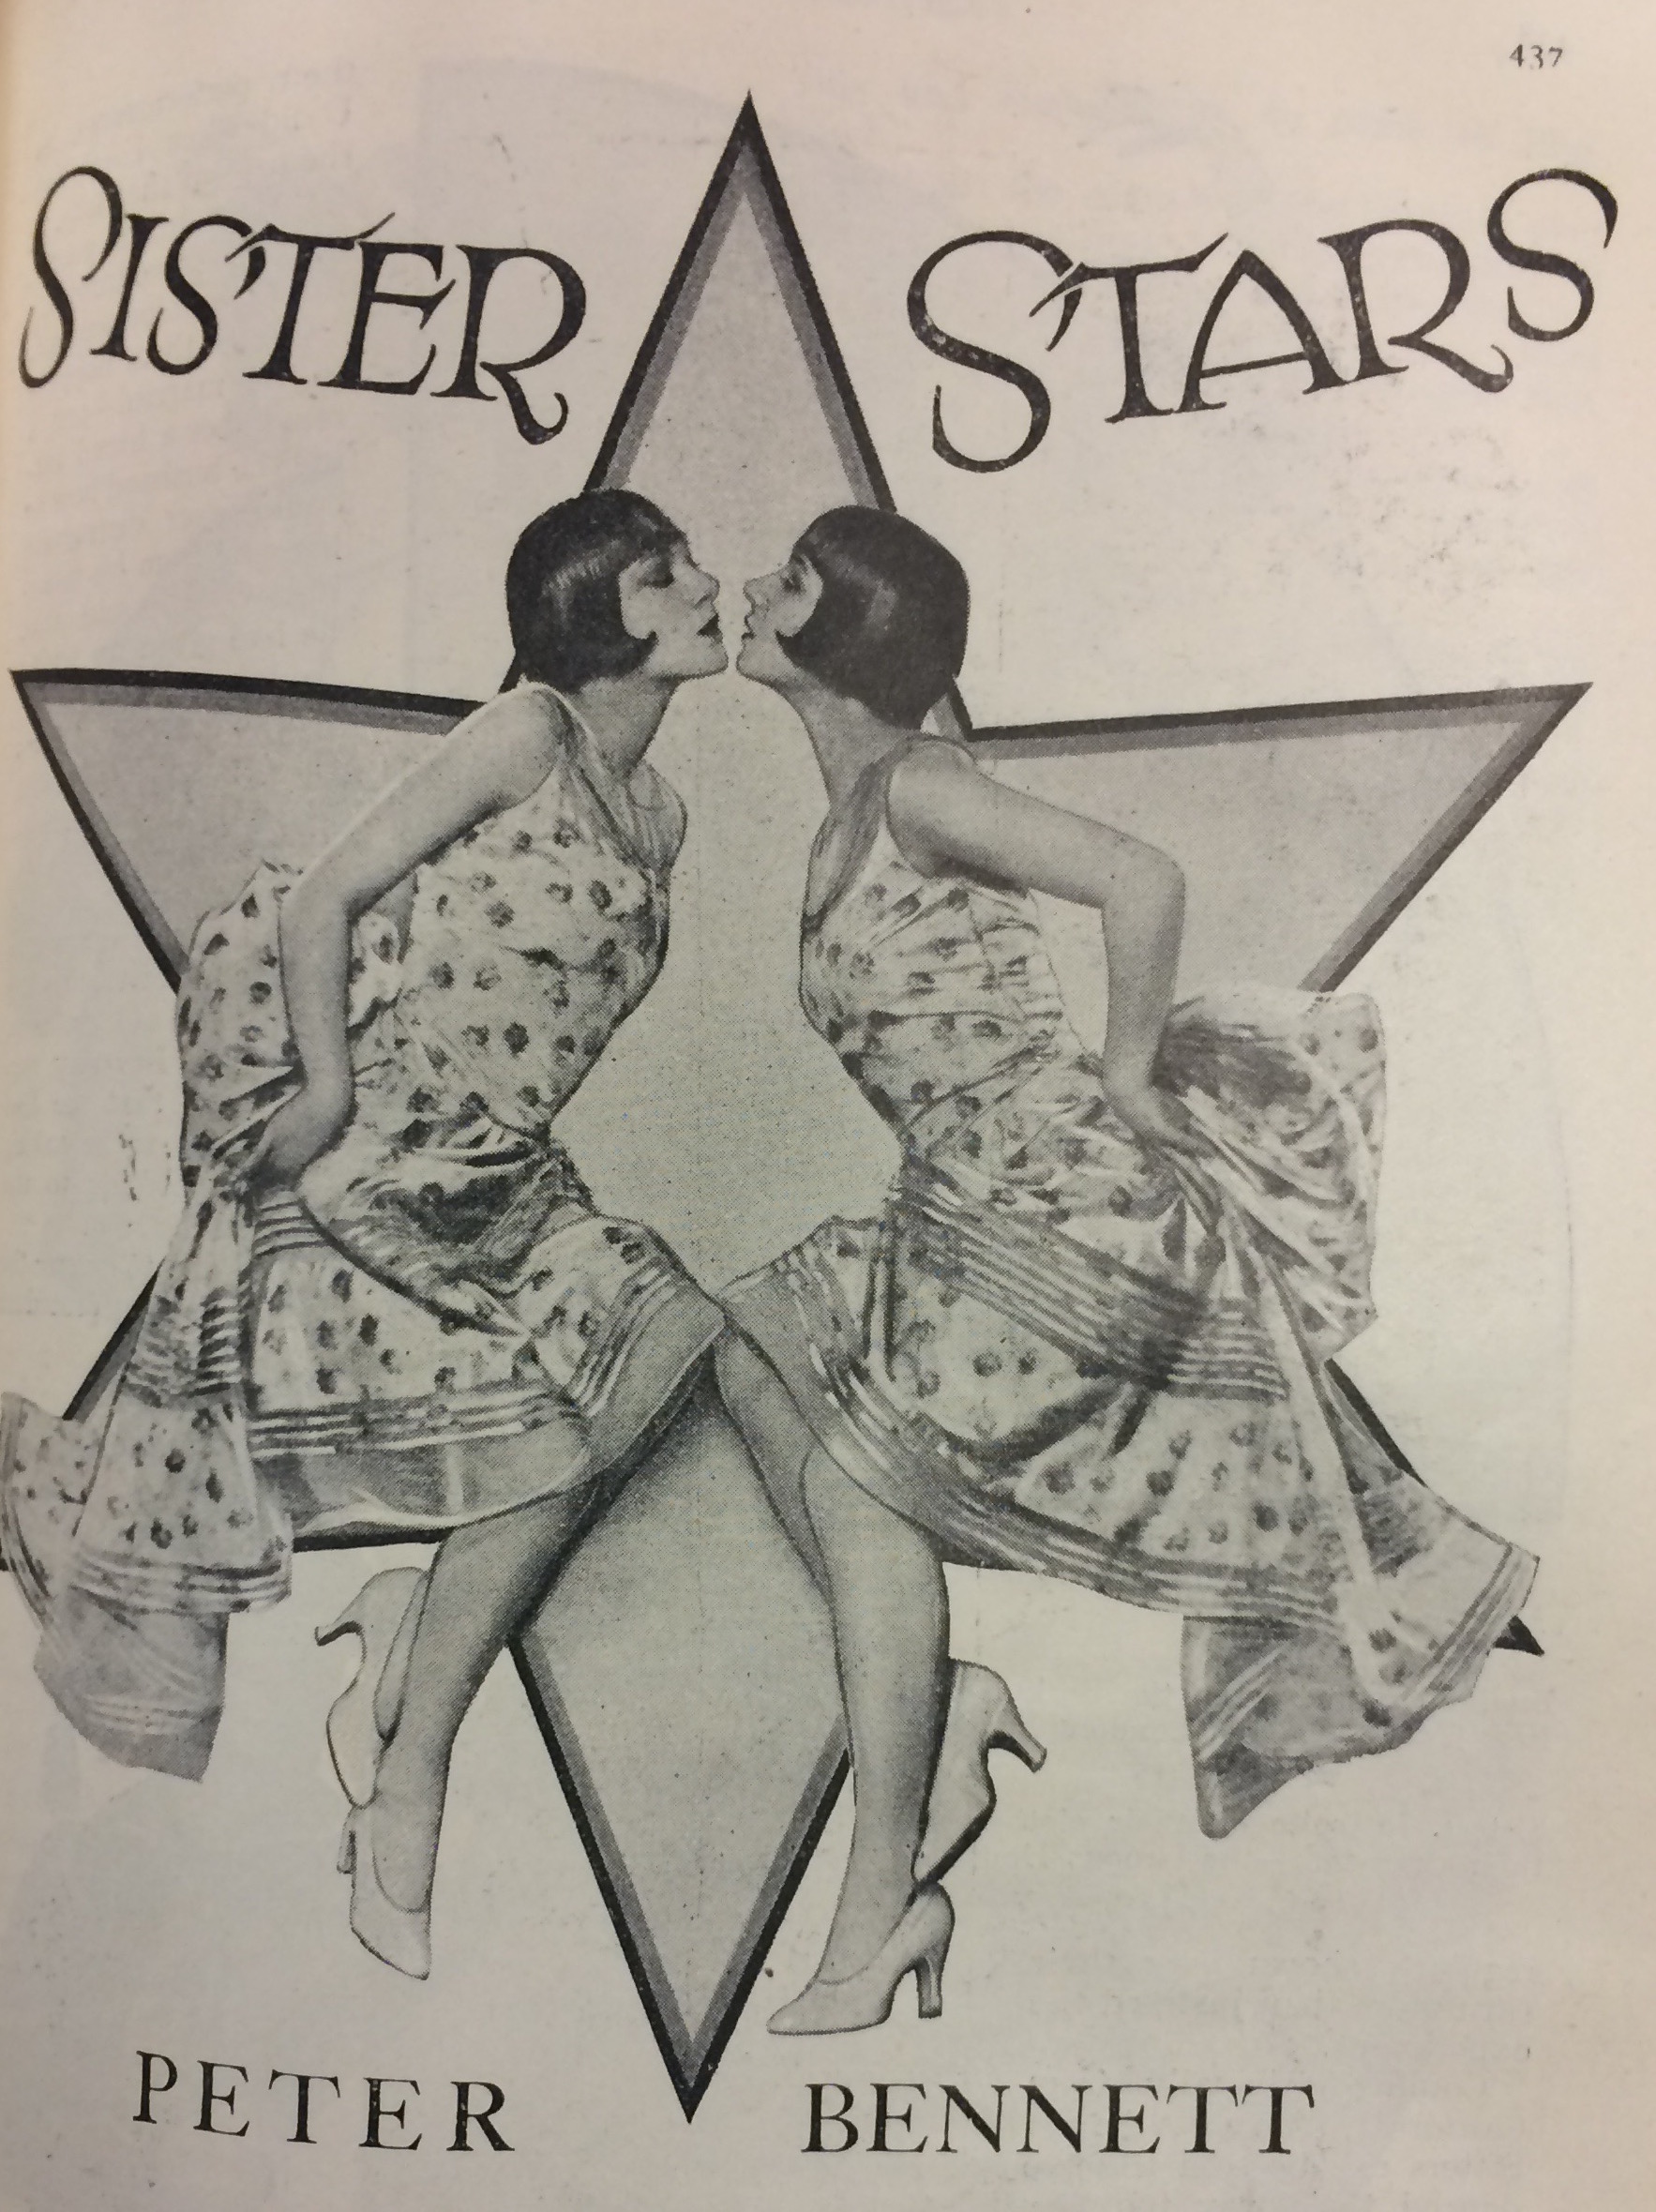 A black and white version of Dorothy Wilding's portrait of the sisters. This appeared, uncredited, in an article in 'The Royal Magazine' in which Peter Bennett interviewed some of the 'most talented' sister acts